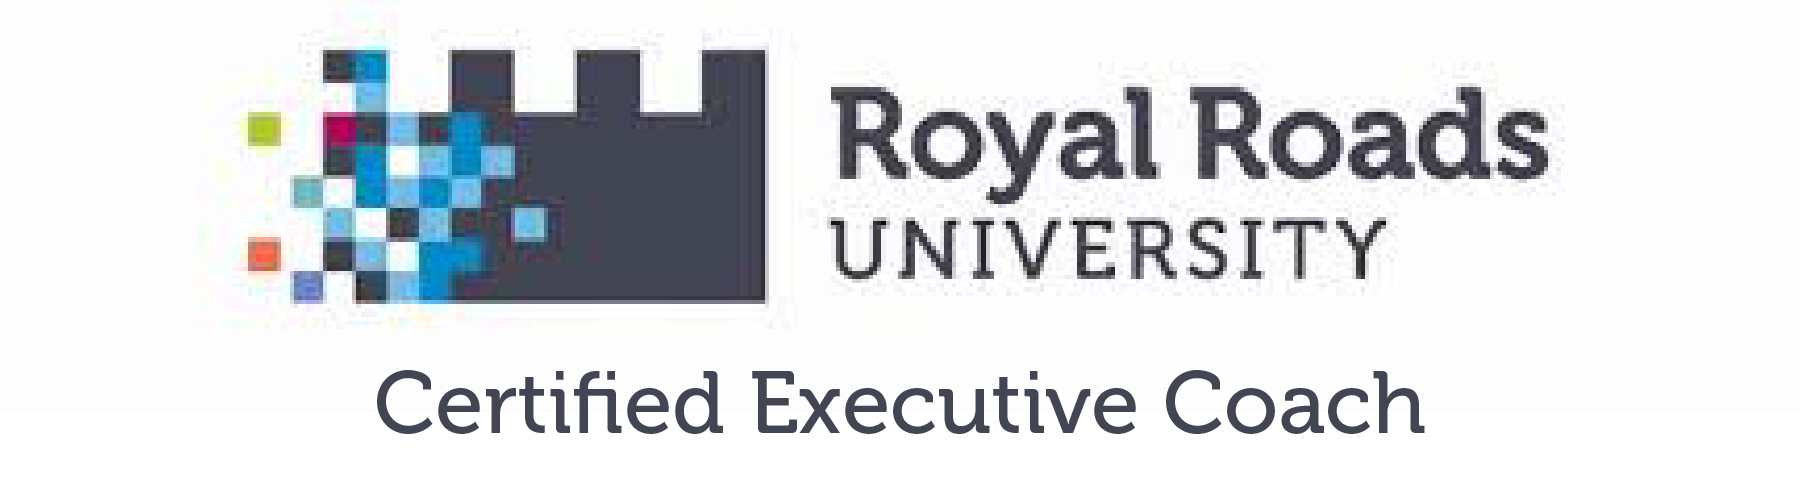 Royal Roads Certified Executive Coach